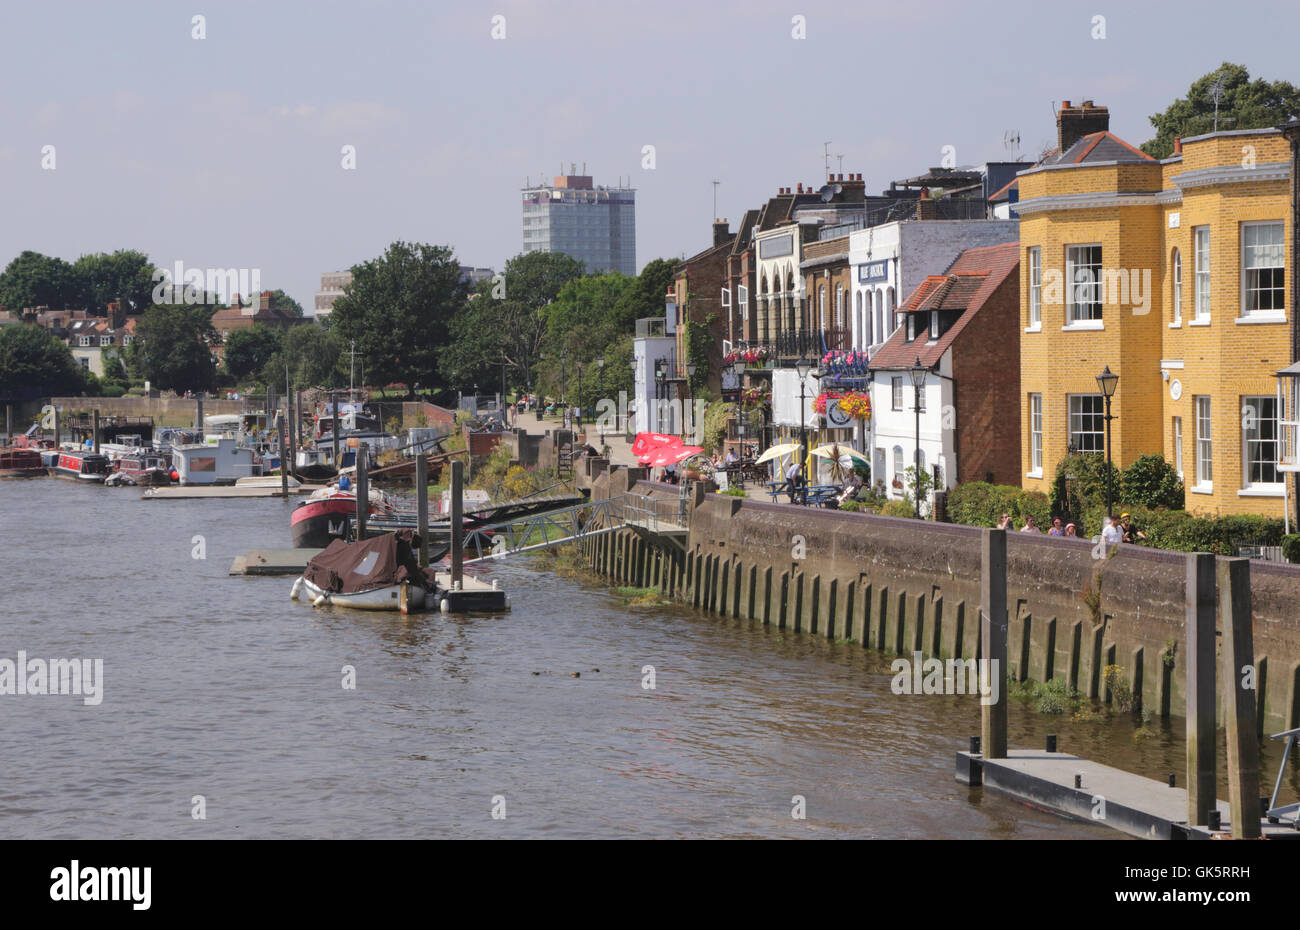 Riverside Hammersmith London Stock Photo